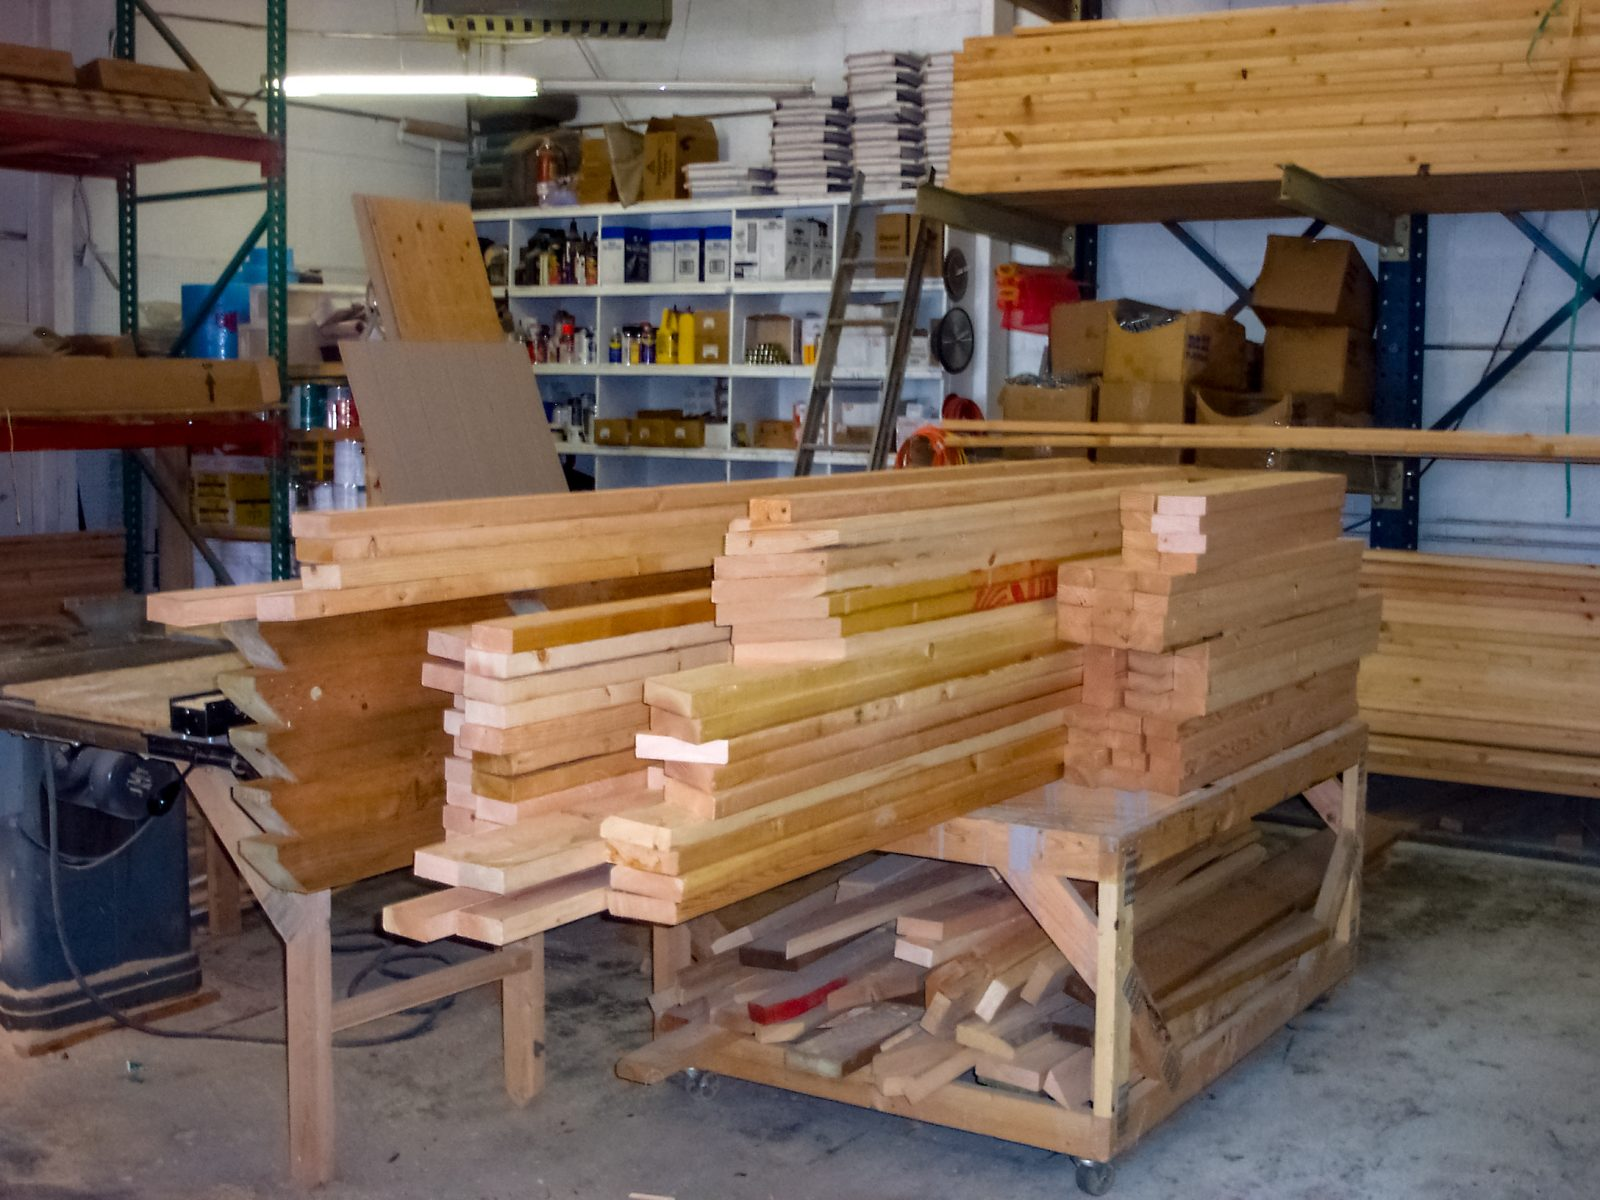 Diy Wood Shed Kits In Oregon Save 100s On A Quality